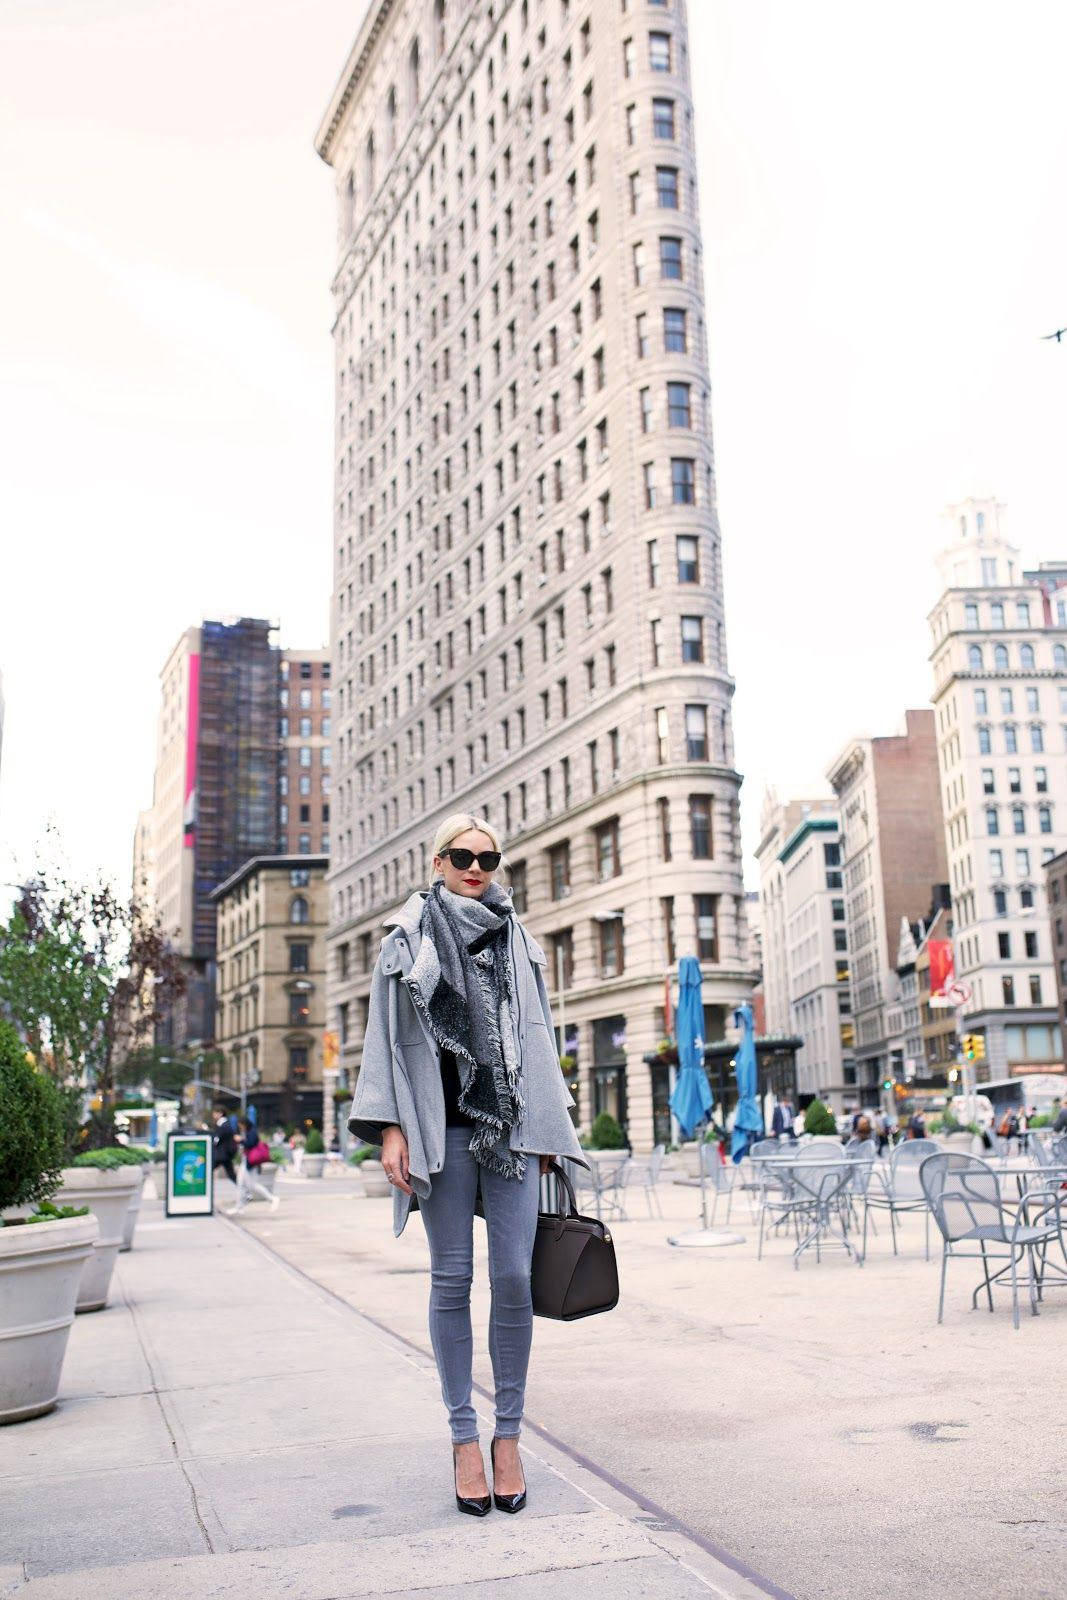 Grey for Days - Blair wearing a DKNY Cape and Longchamp Bag.